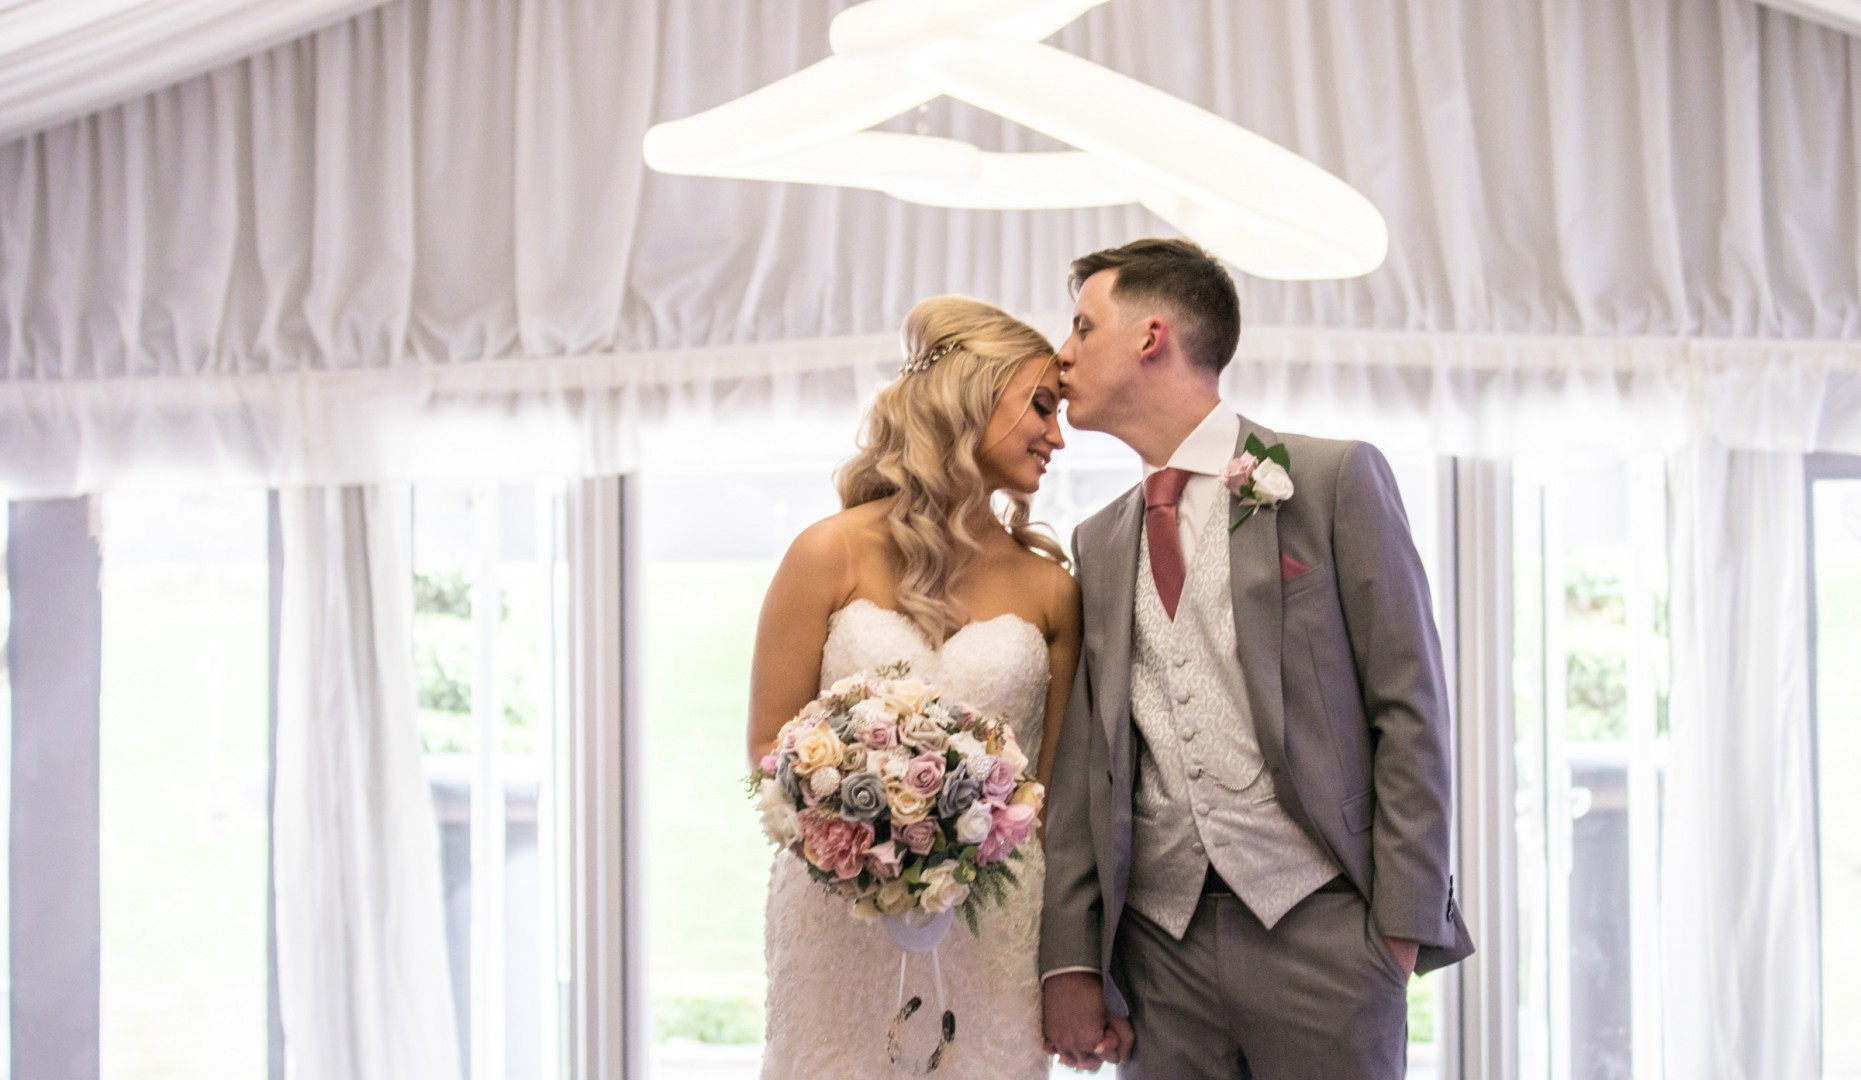 Spring Wedding Open Day, Milsoms Kesgrave Hall – Sunday 1st March 2020